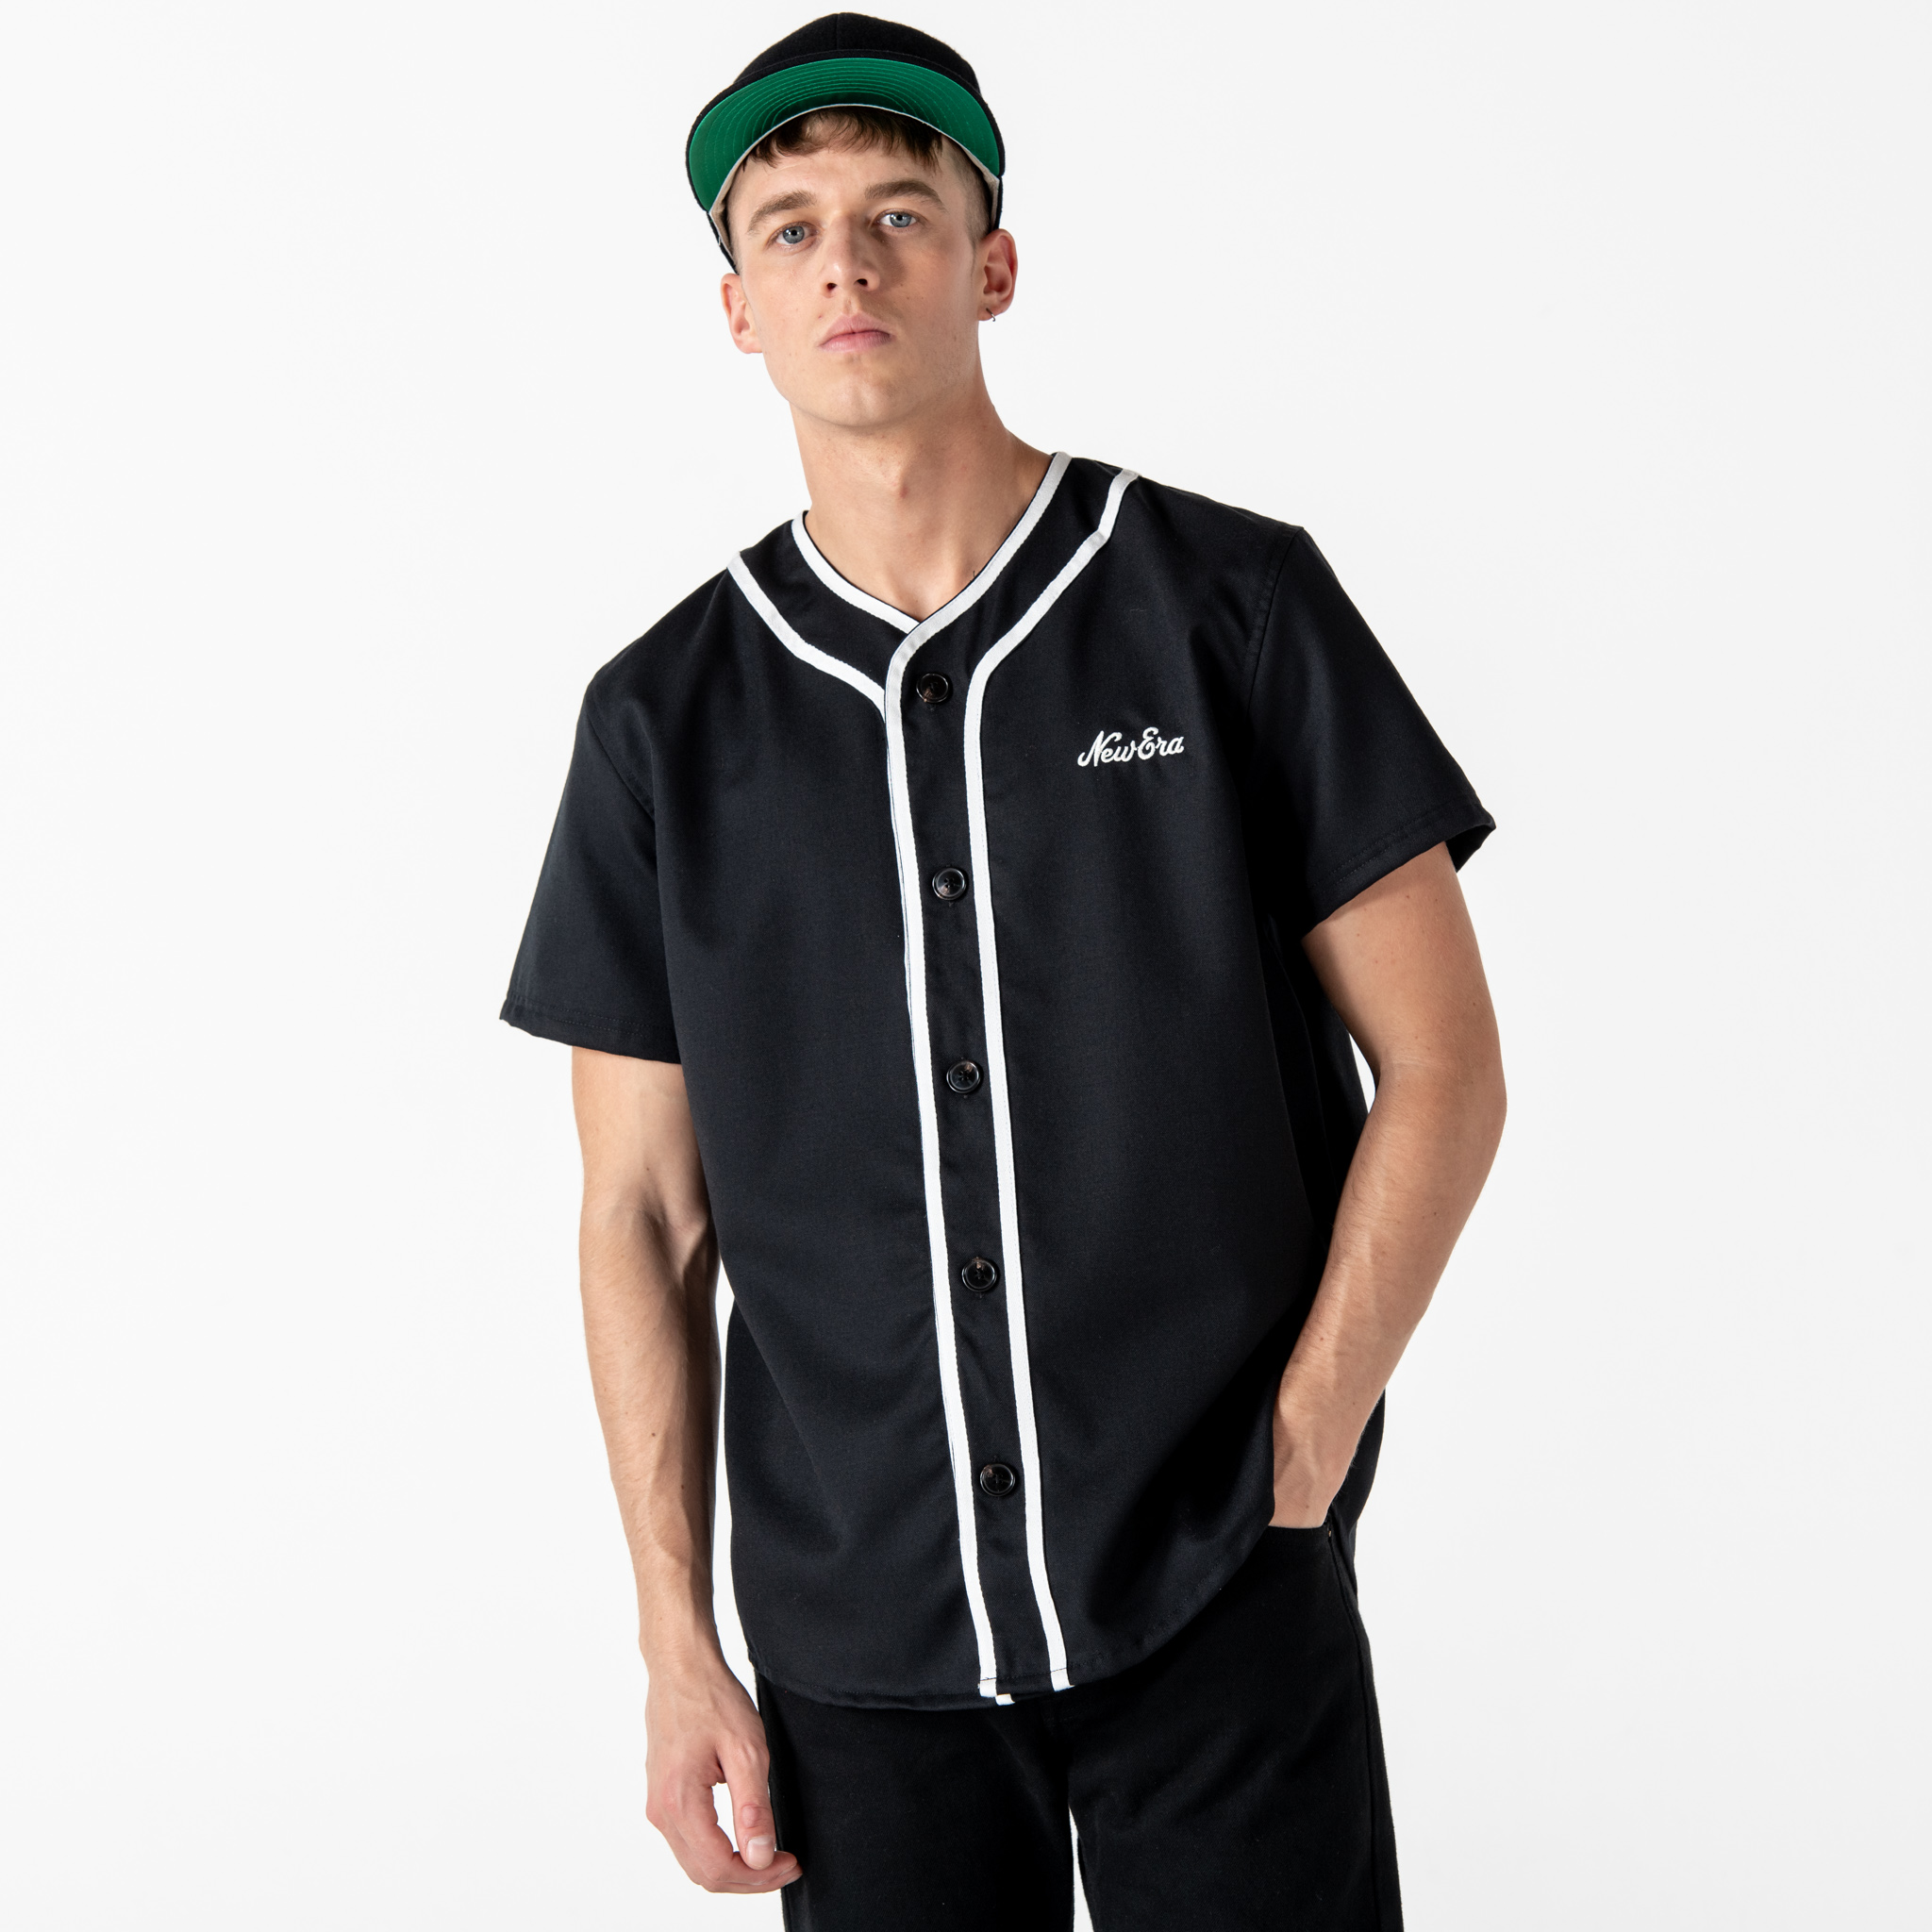 New Era Icons Black Baseball Jersey